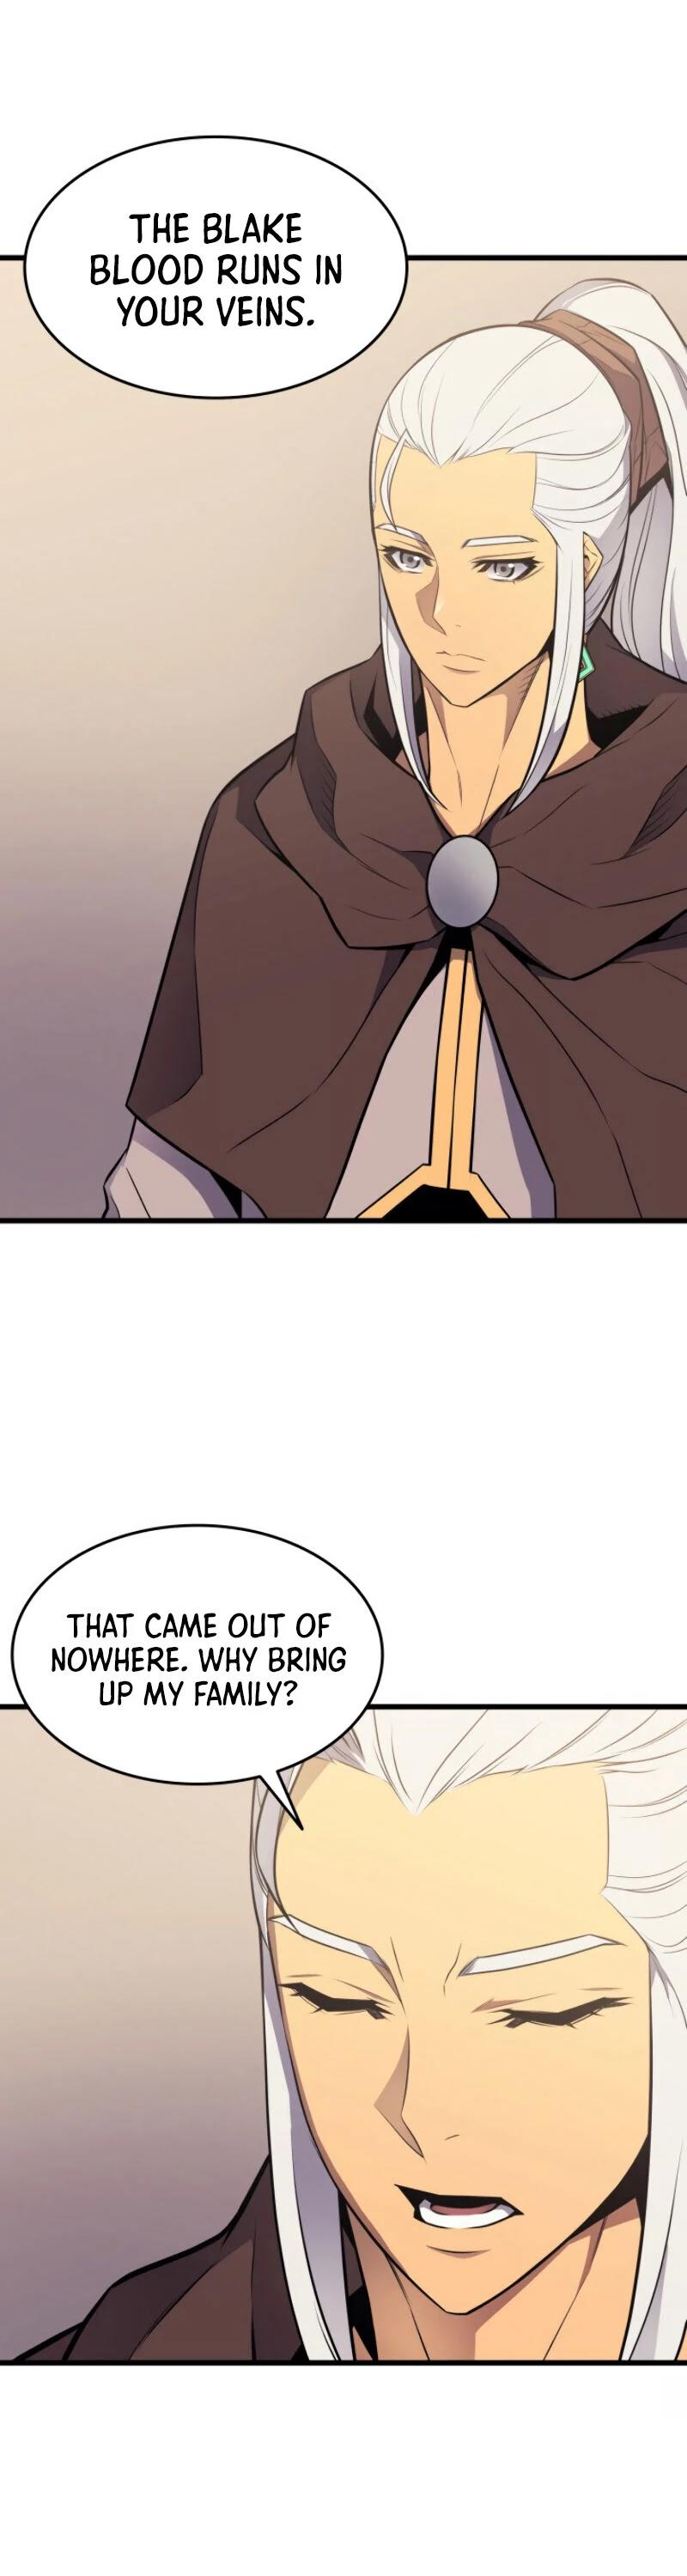 The Great Mage Returns After 4000 Years Chapter 88 page 10 - Mangakakalots.com